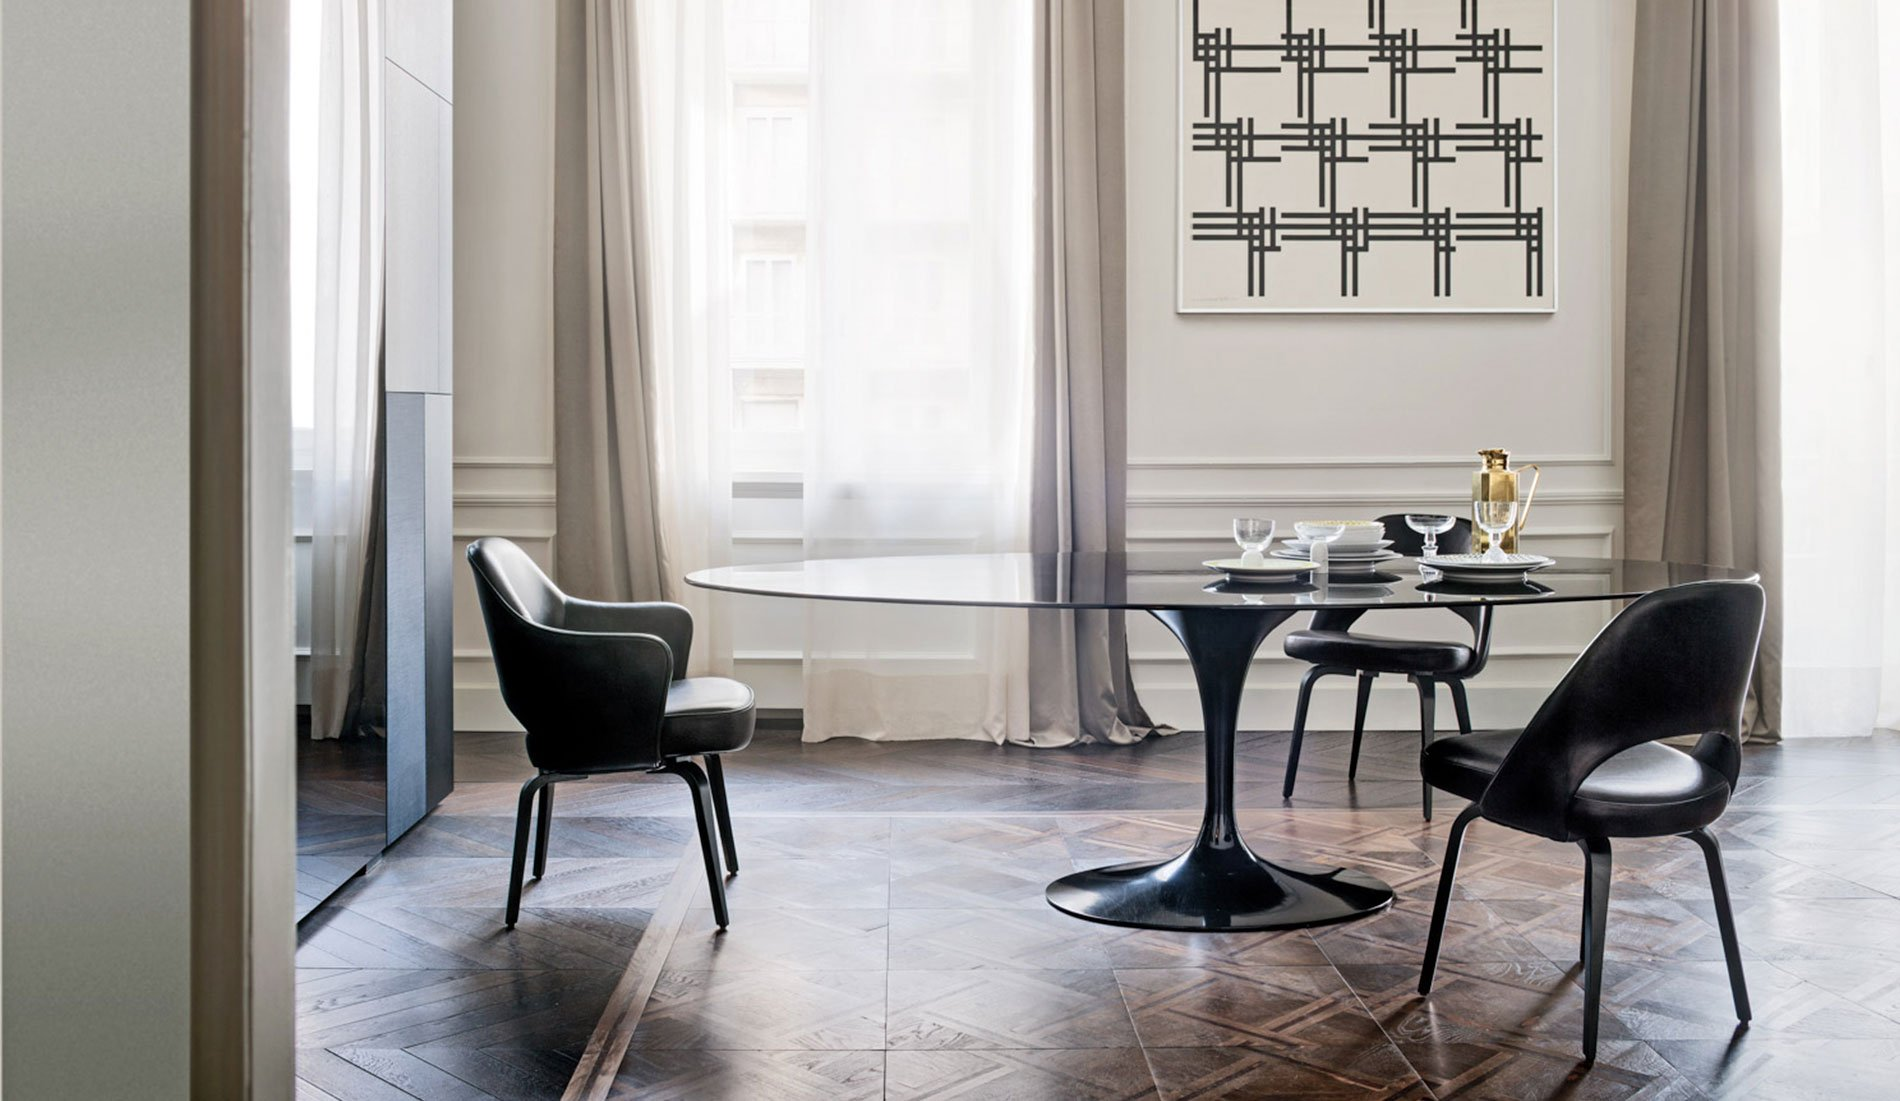 Knoll Dining Room with Saarinen Table and Saarinen Executive Chairs